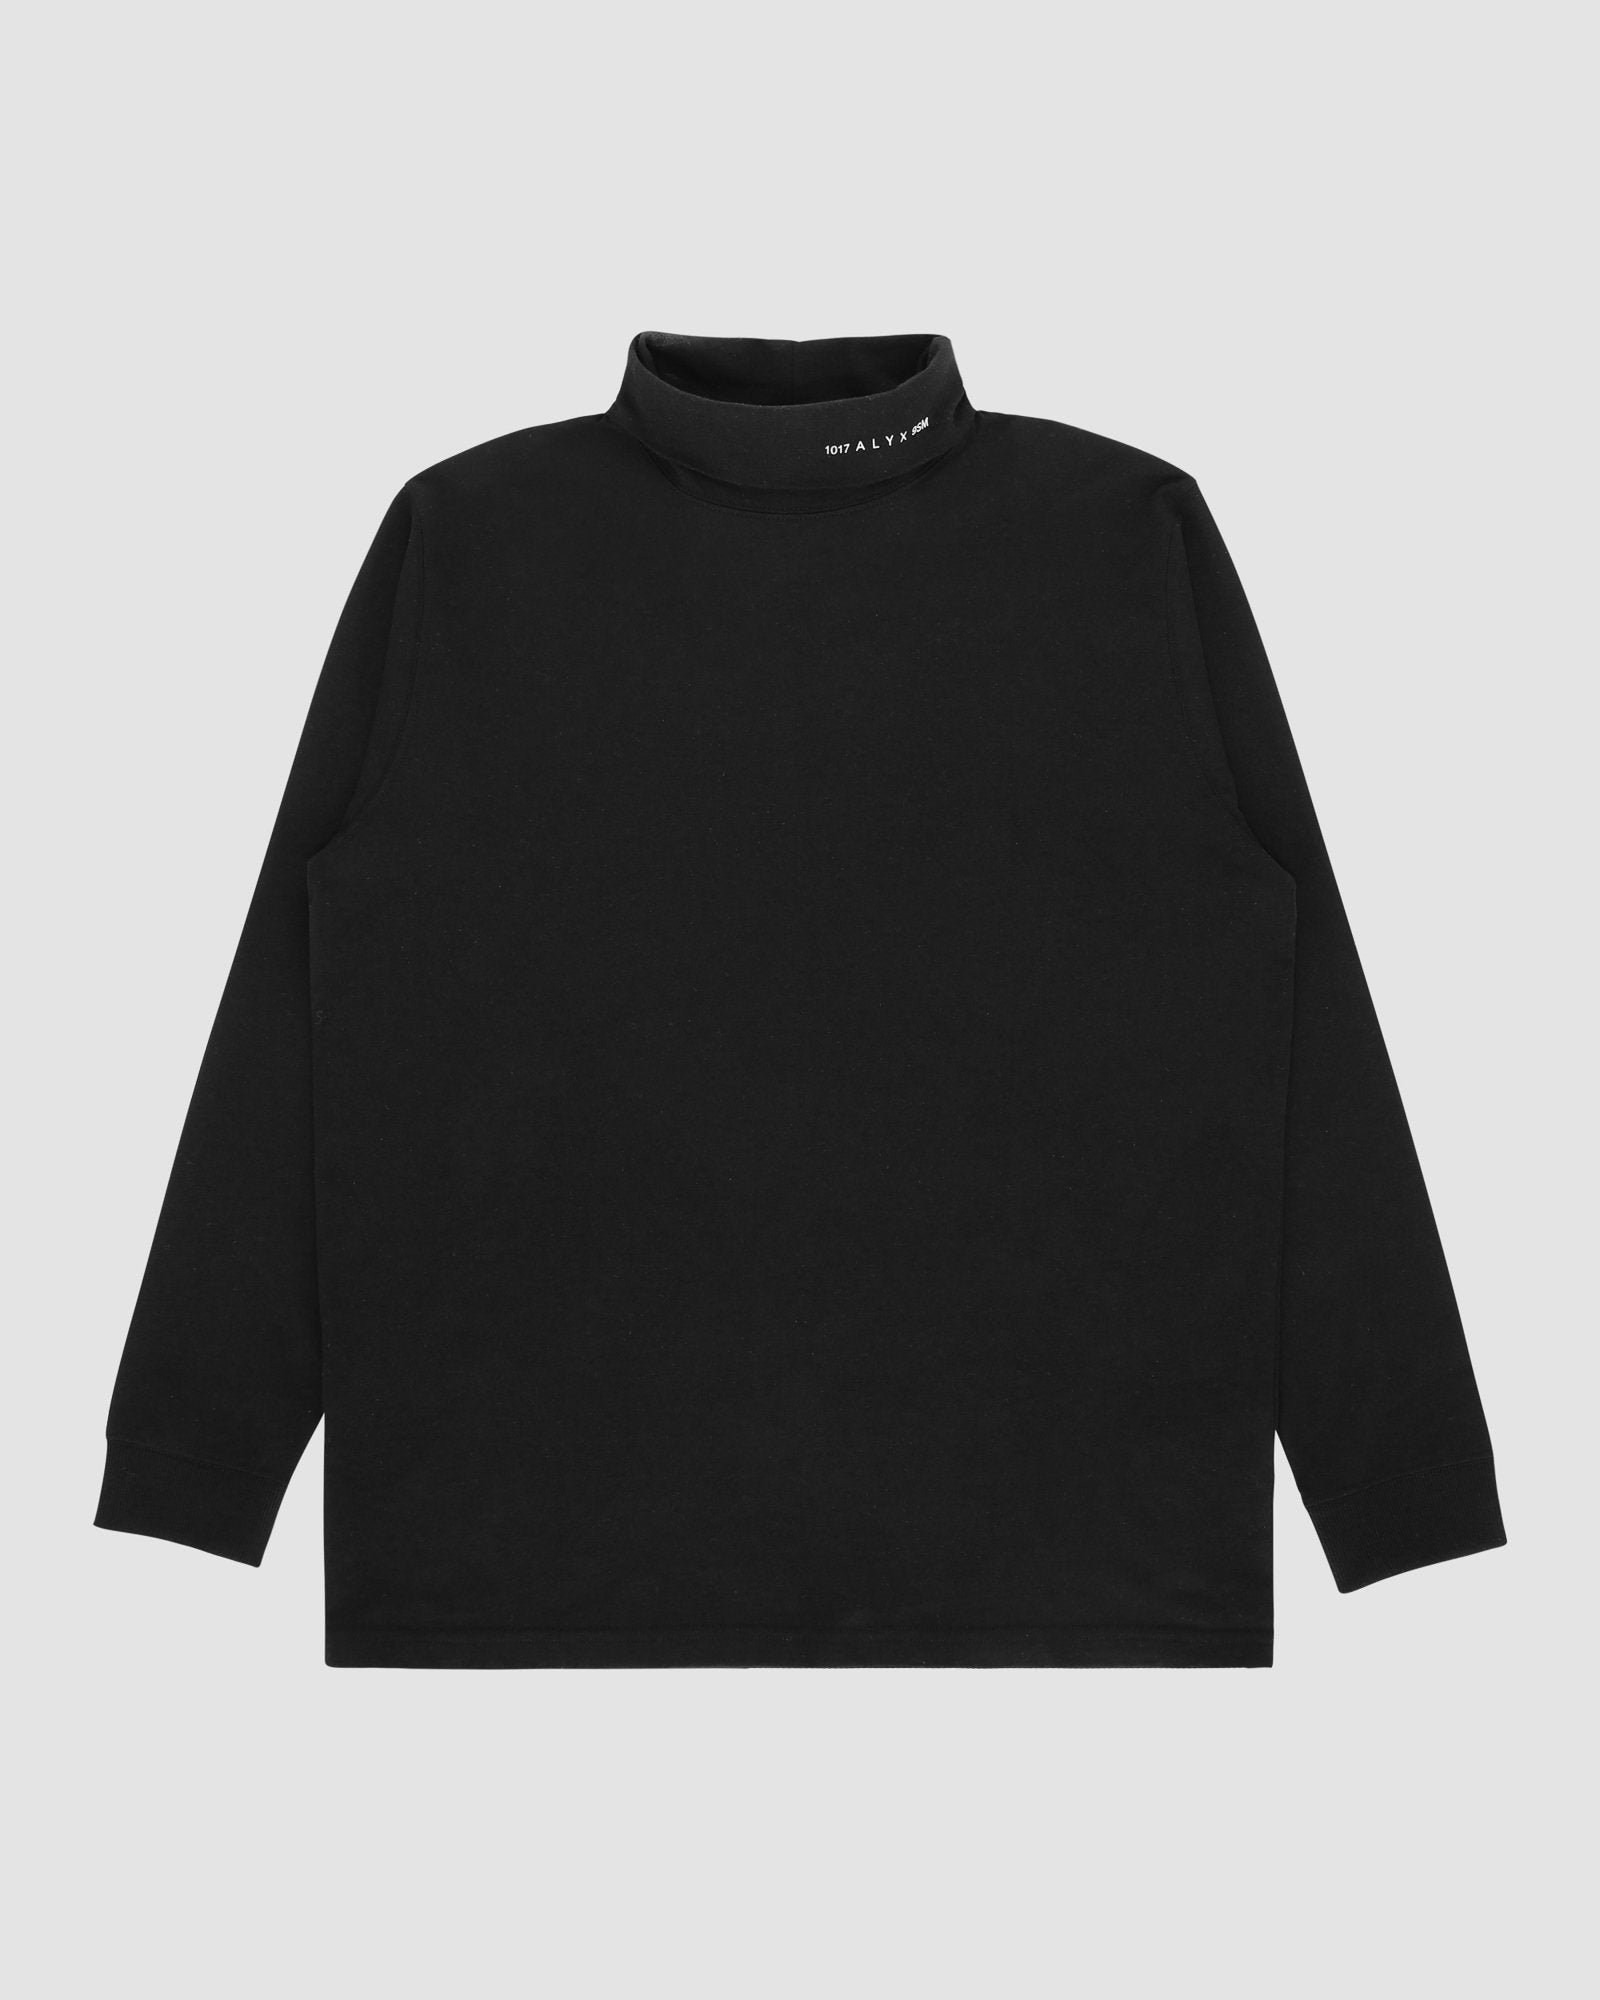 L/S ROLL NECK TEE VISUAL